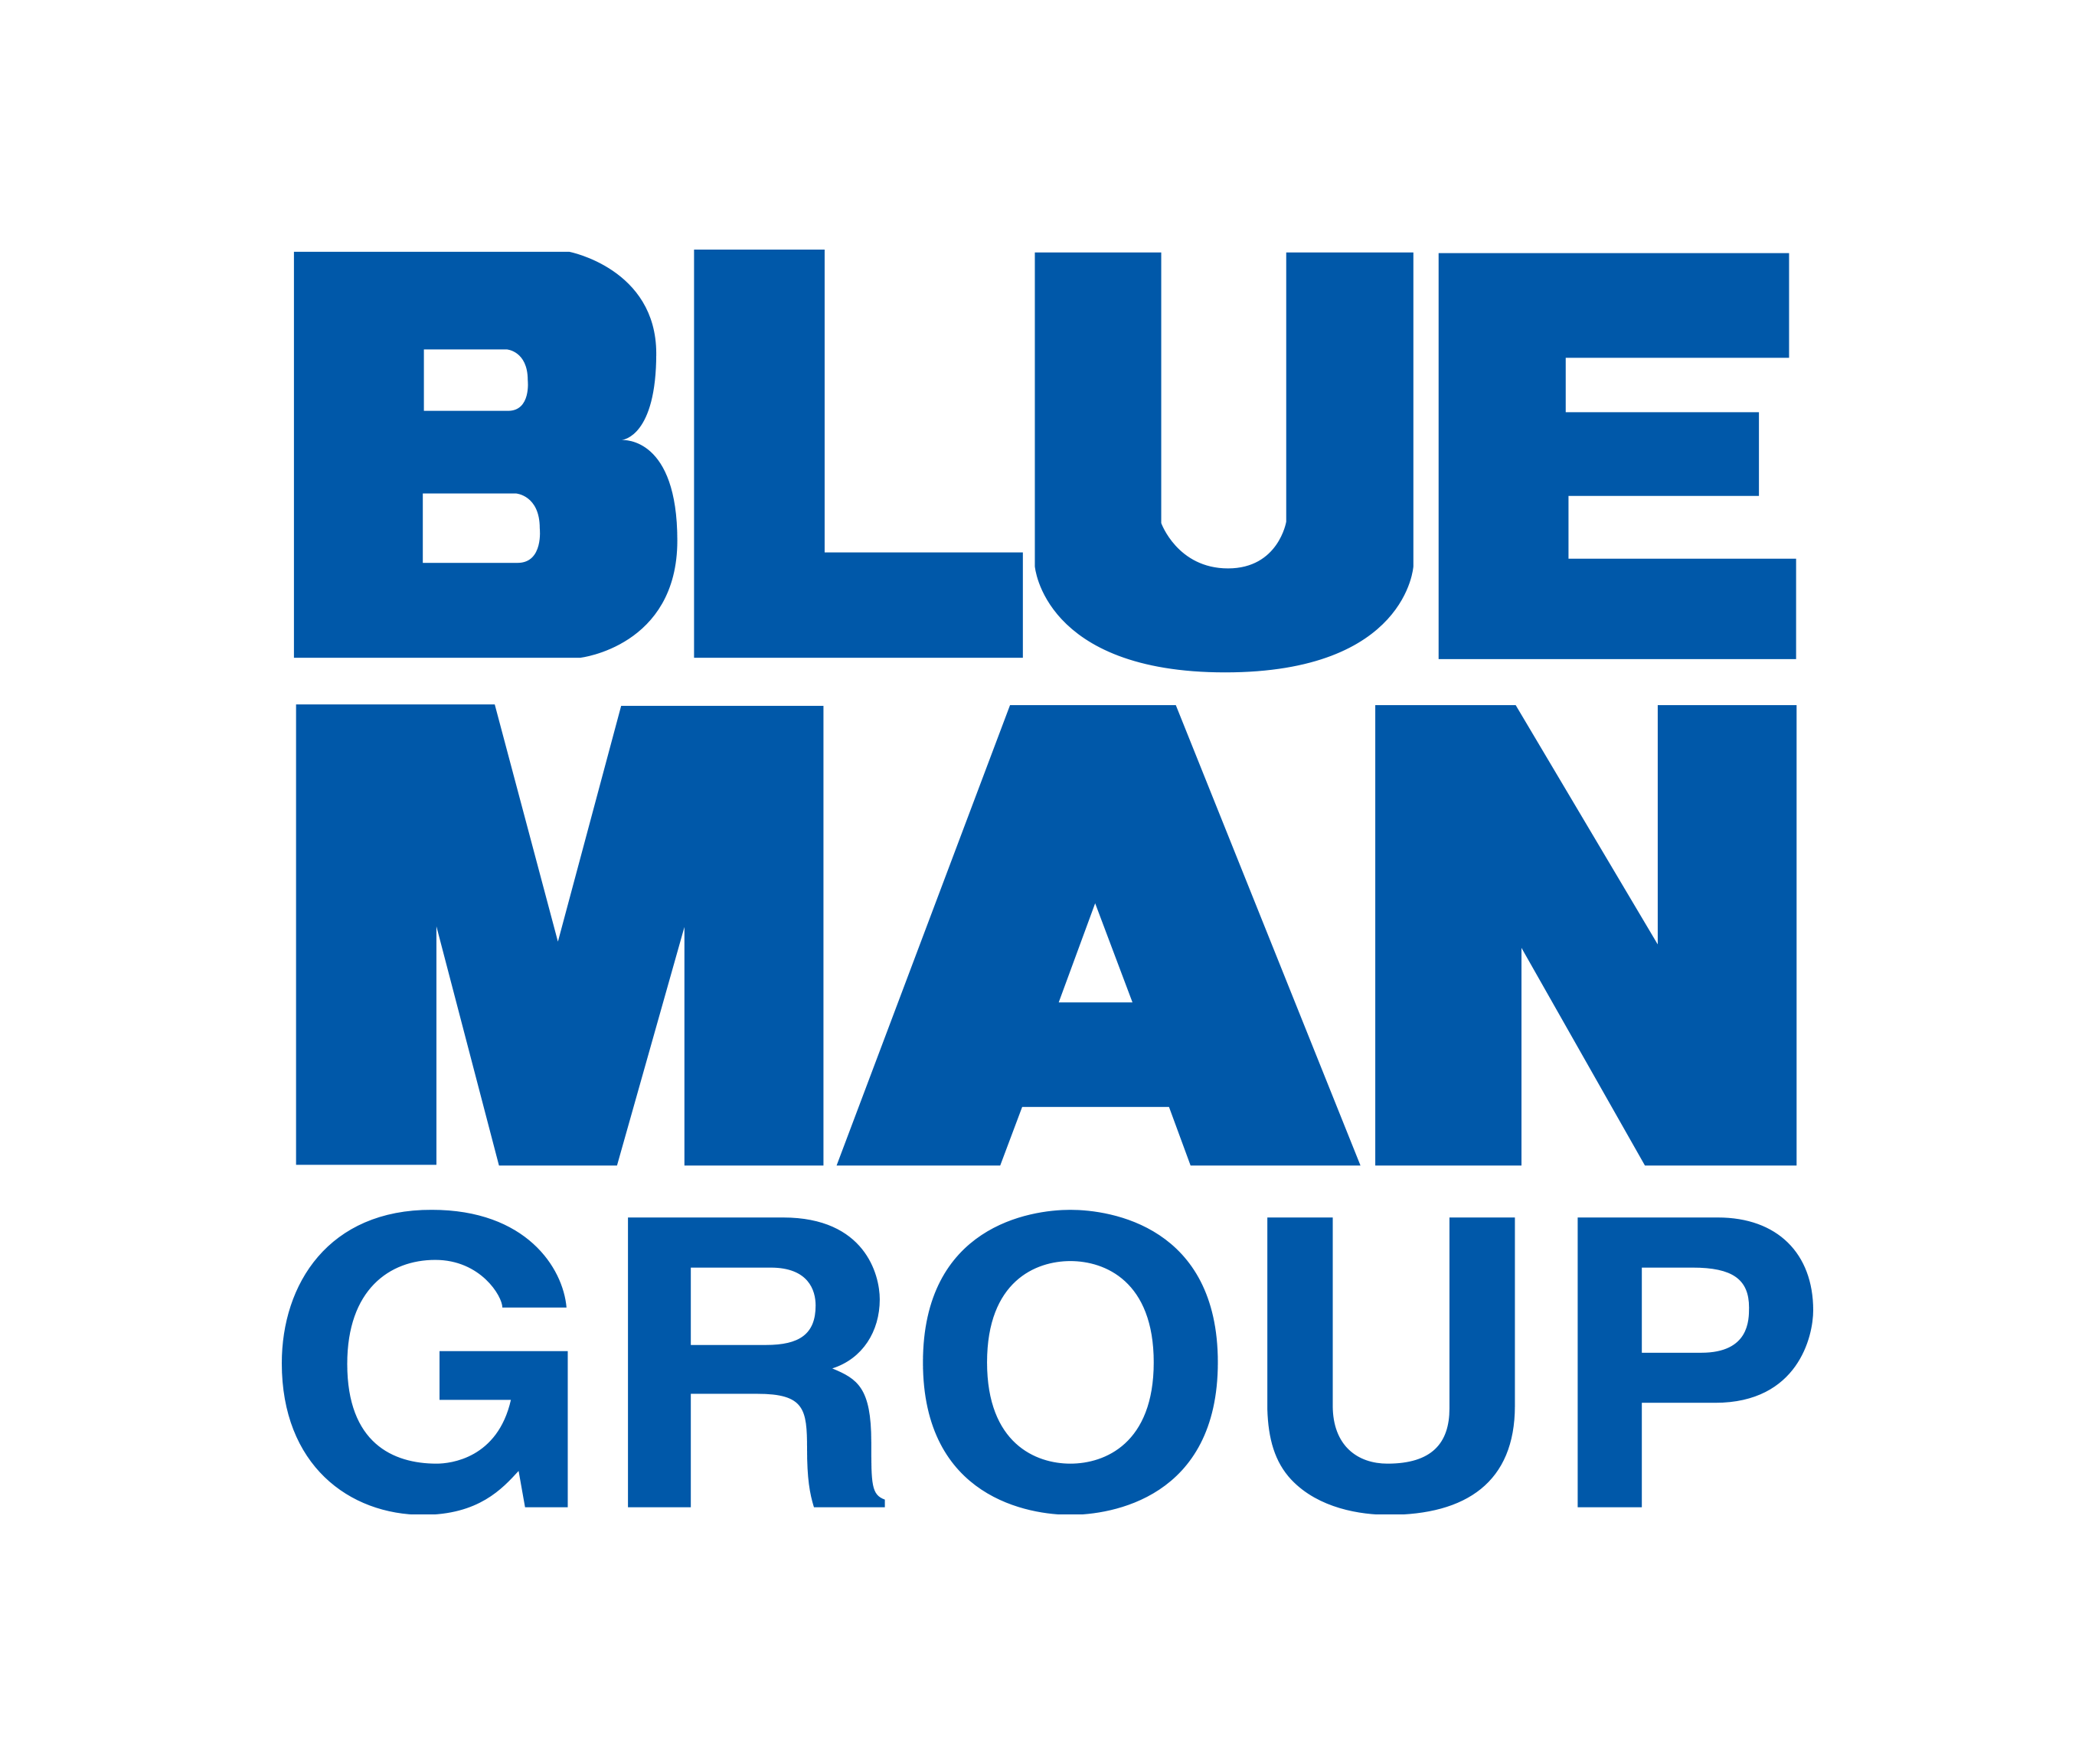 Blue_Man_Group Logo 2.svg copy